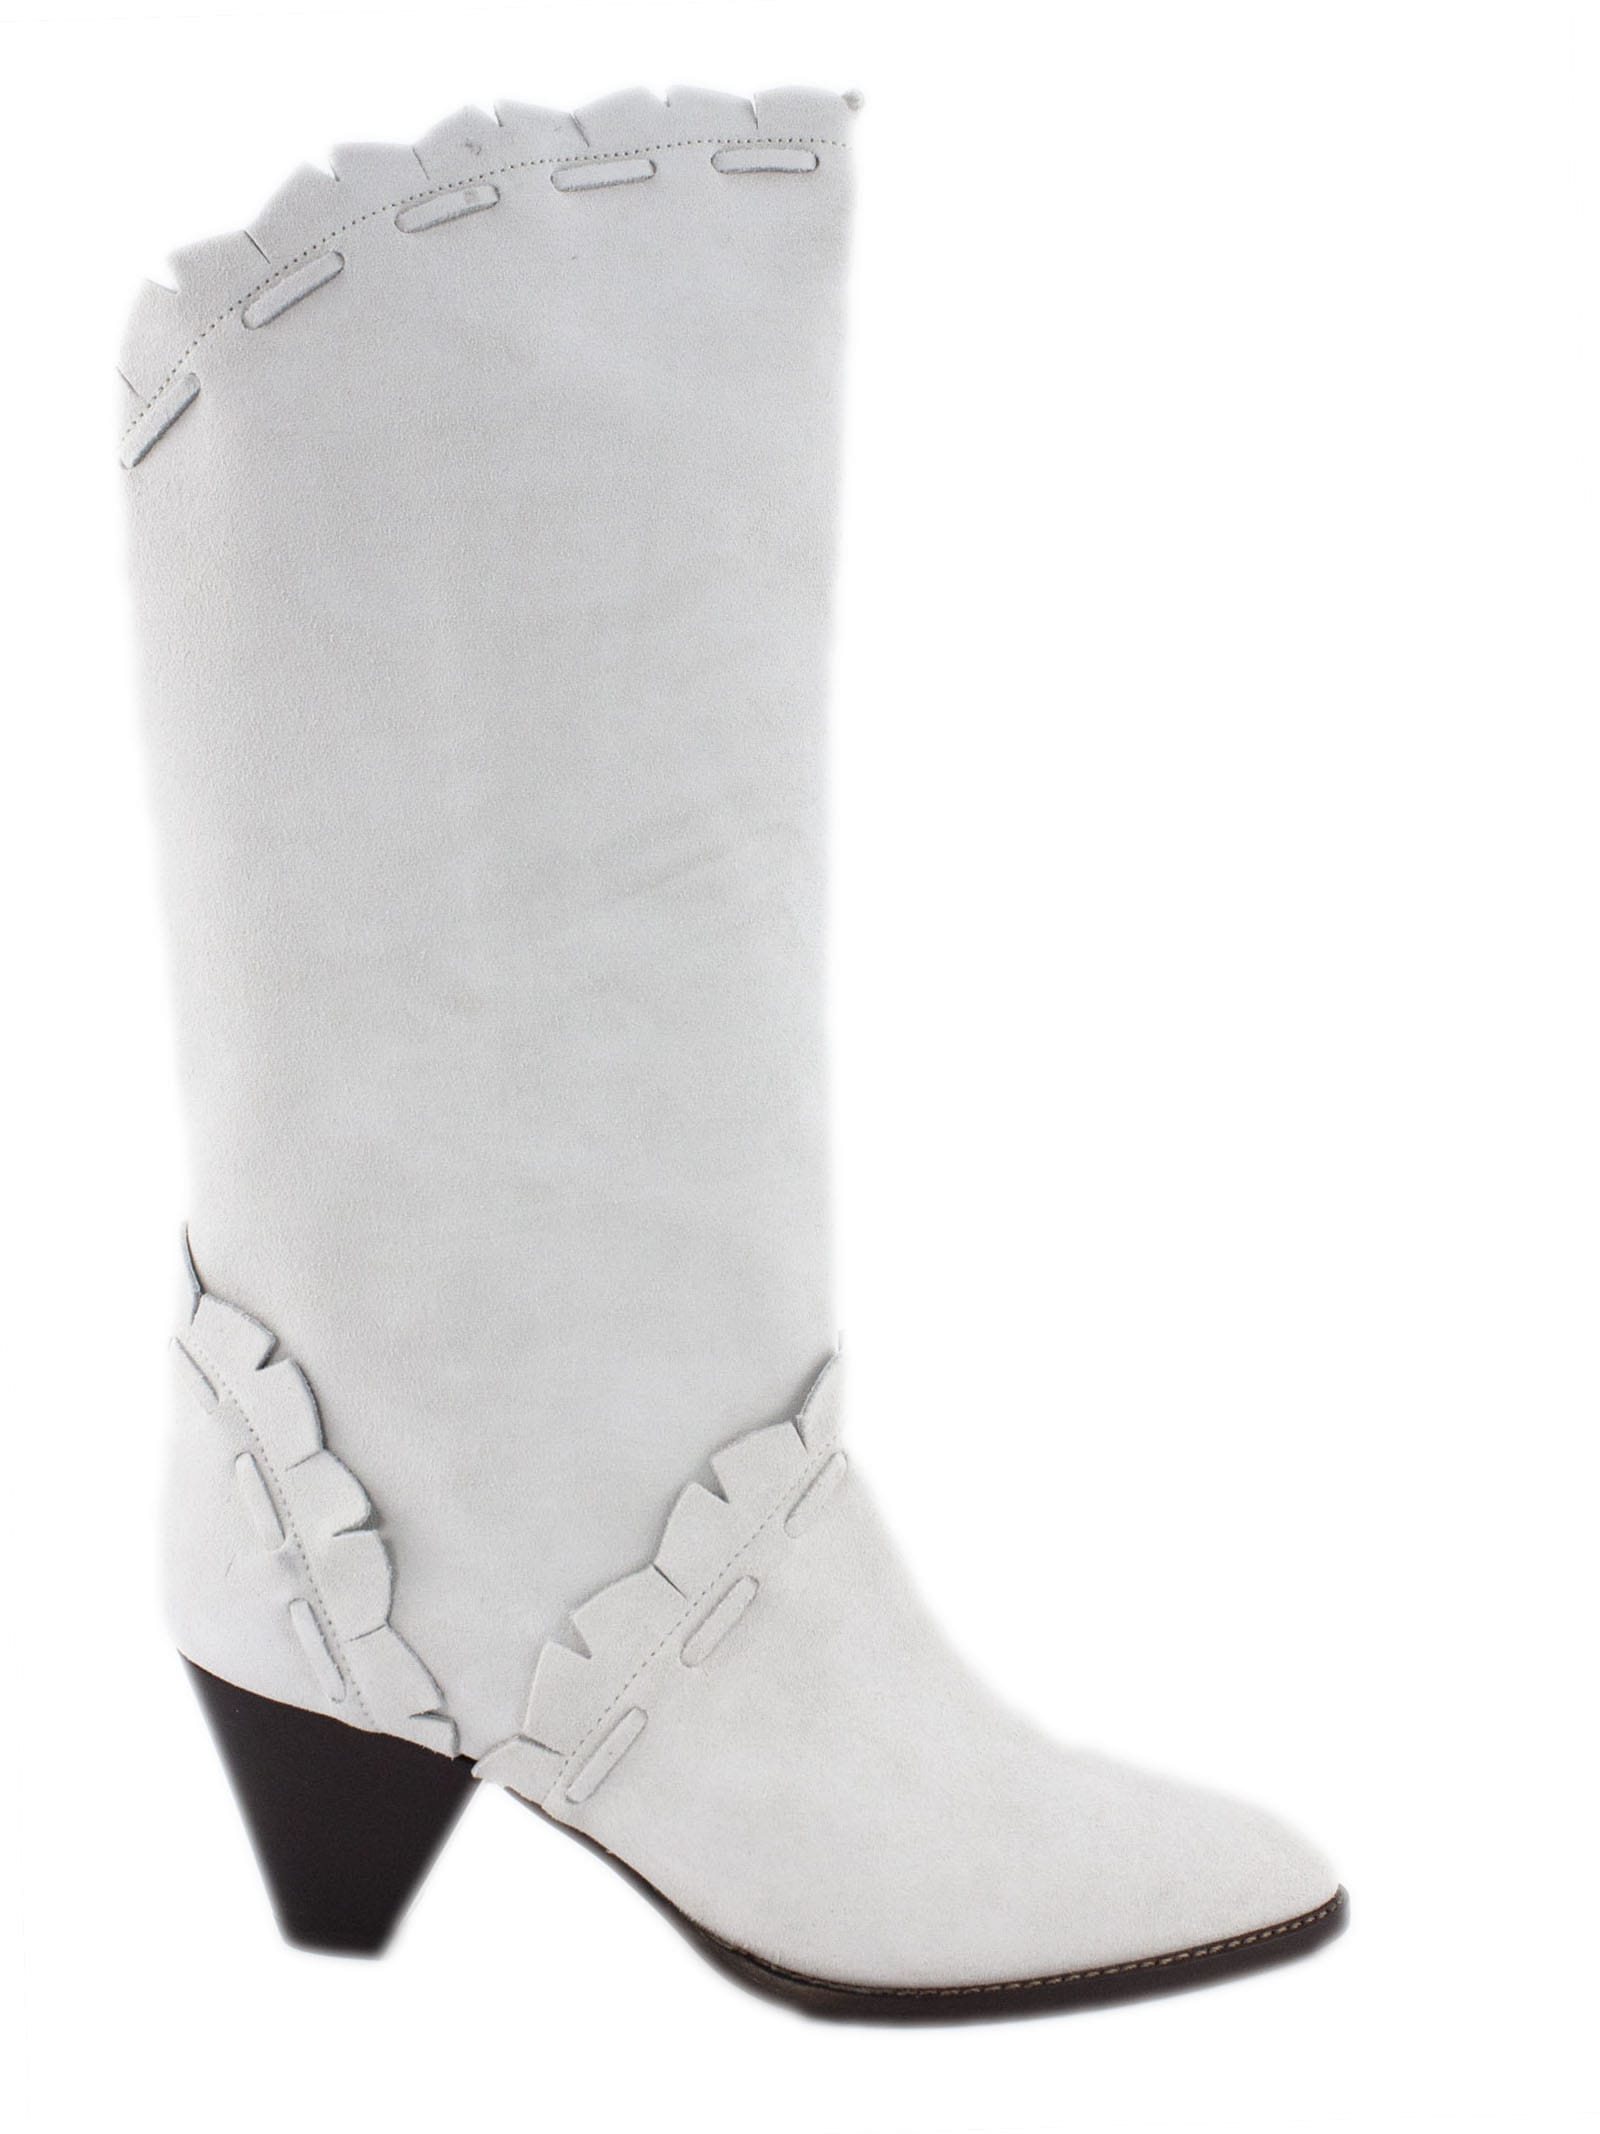 Isabel Marant White Suede Boots